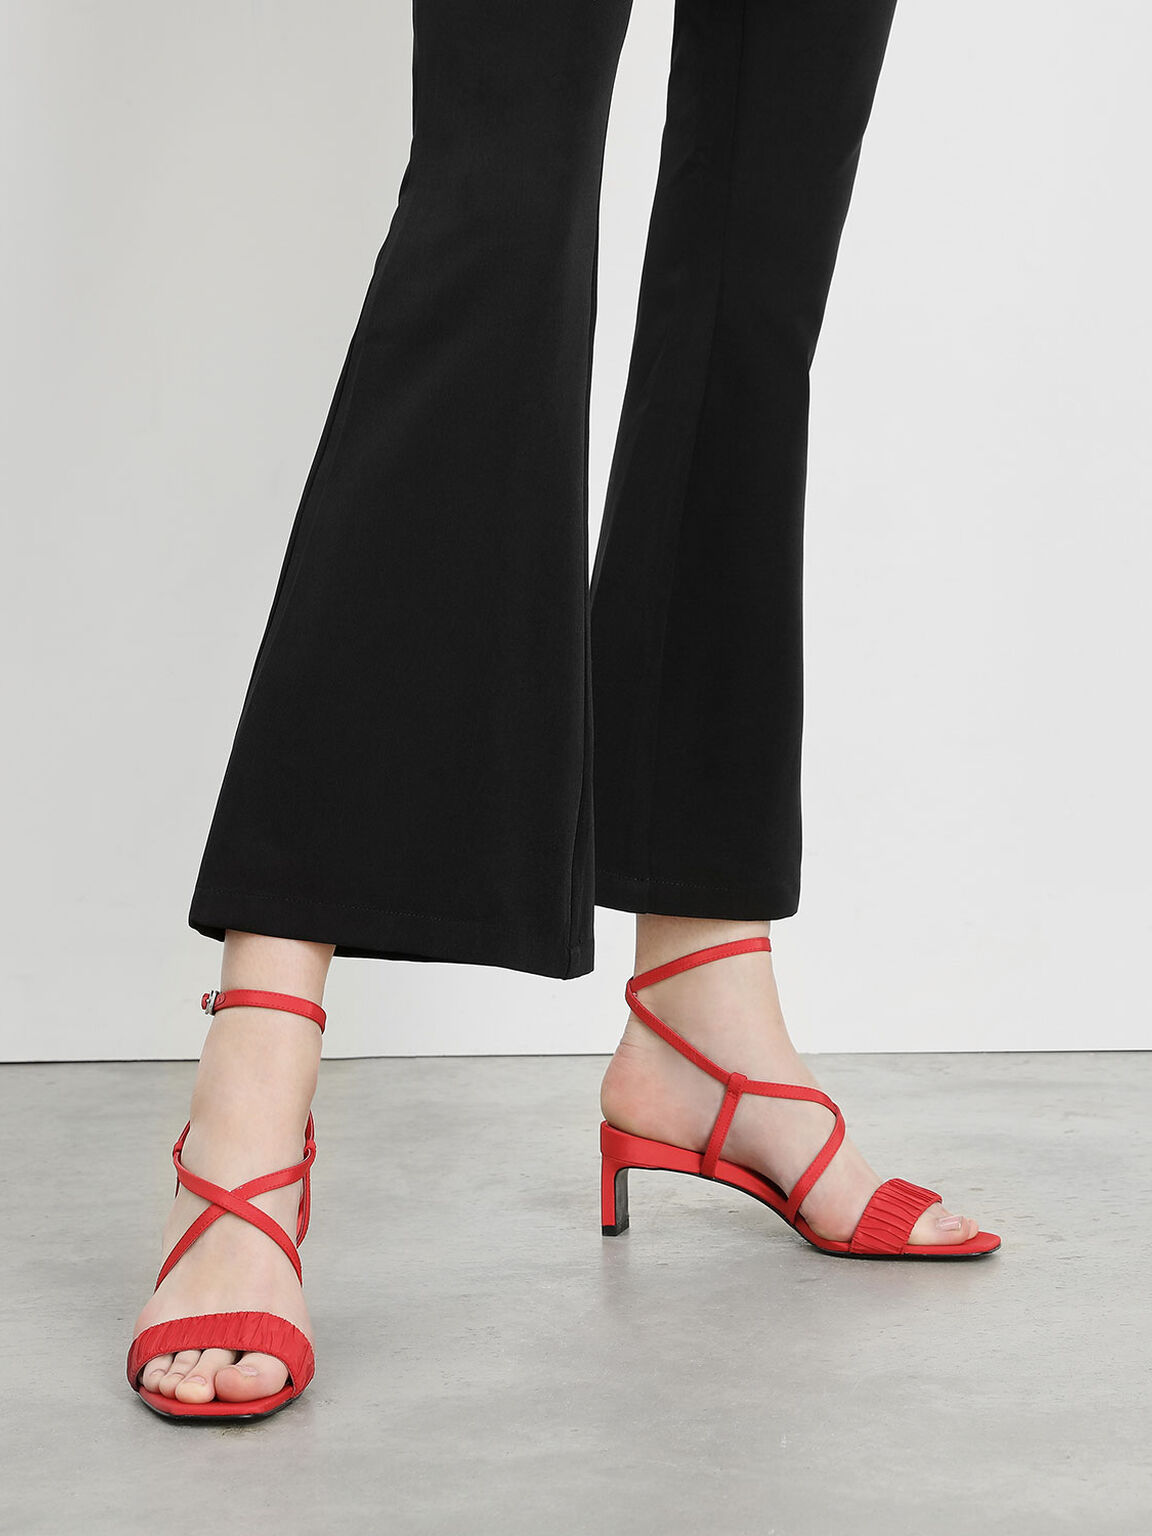 Ruch-Effect Strappy Sandals, Red, hi-res